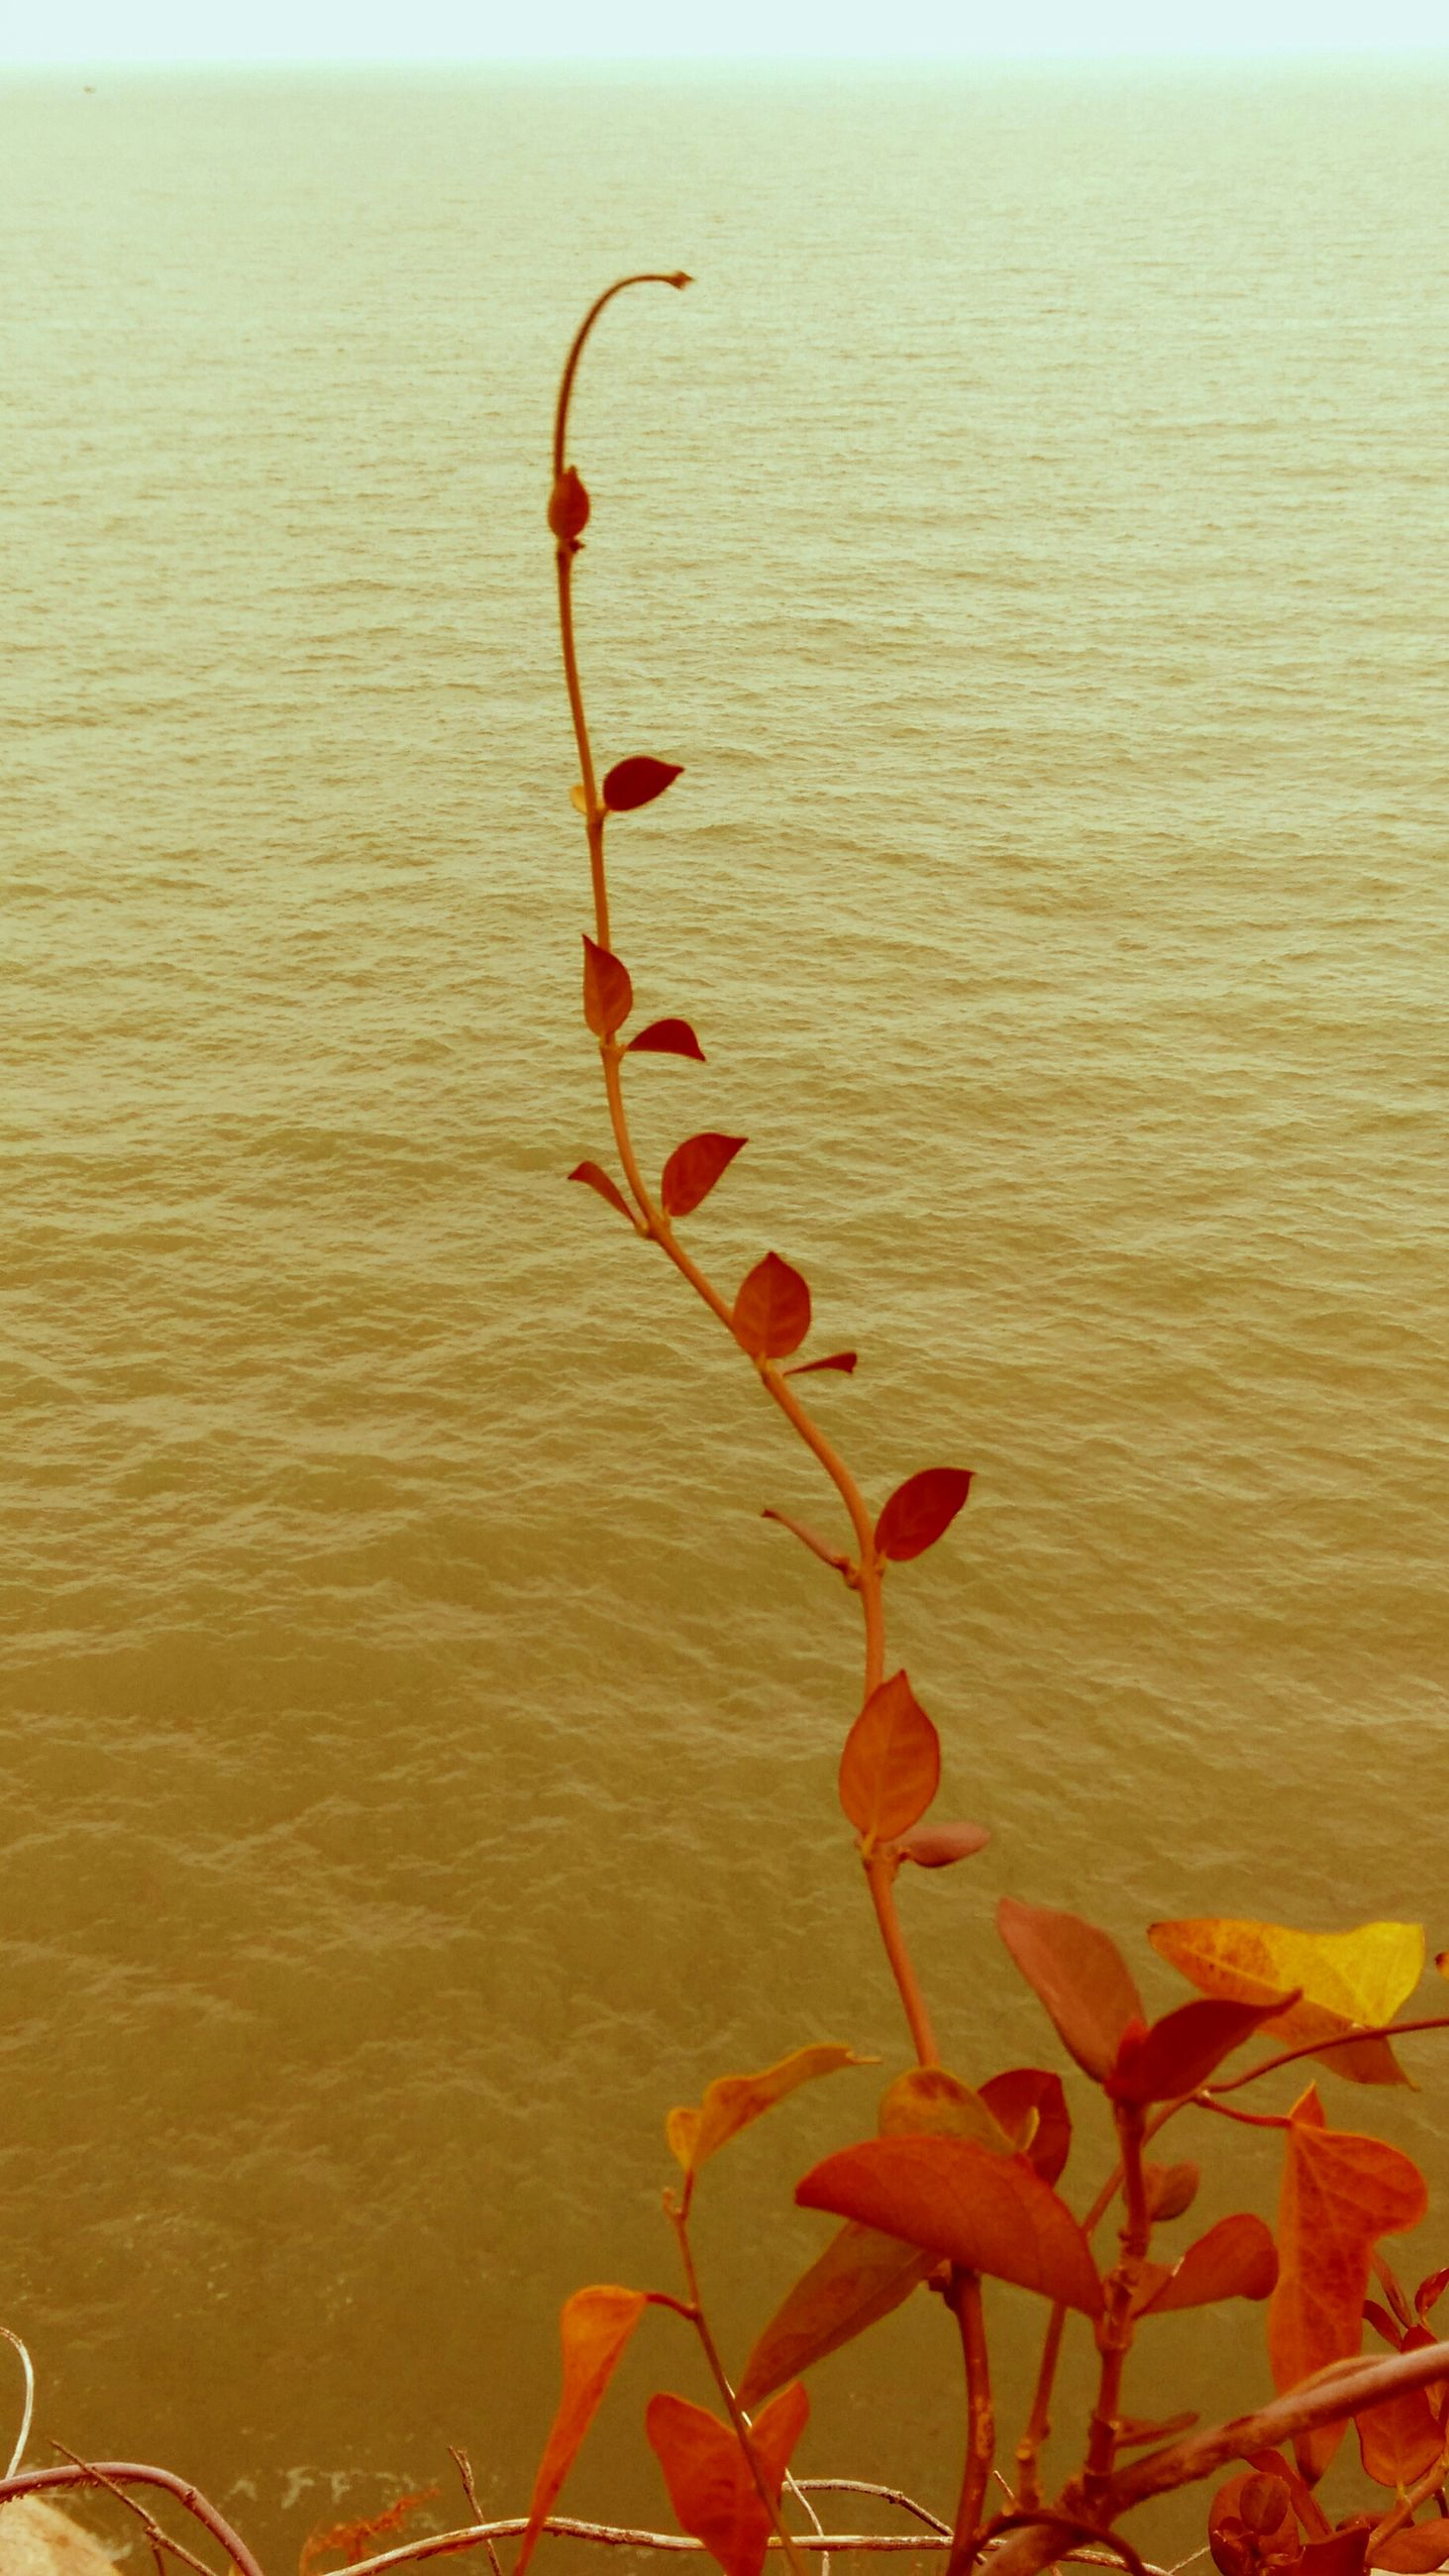 water, nature, beauty in nature, plant, red, growth, sea, tranquility, flower, close-up, no people, day, stem, high angle view, outdoors, leaf, rippled, horizon over water, orange color, tranquil scene